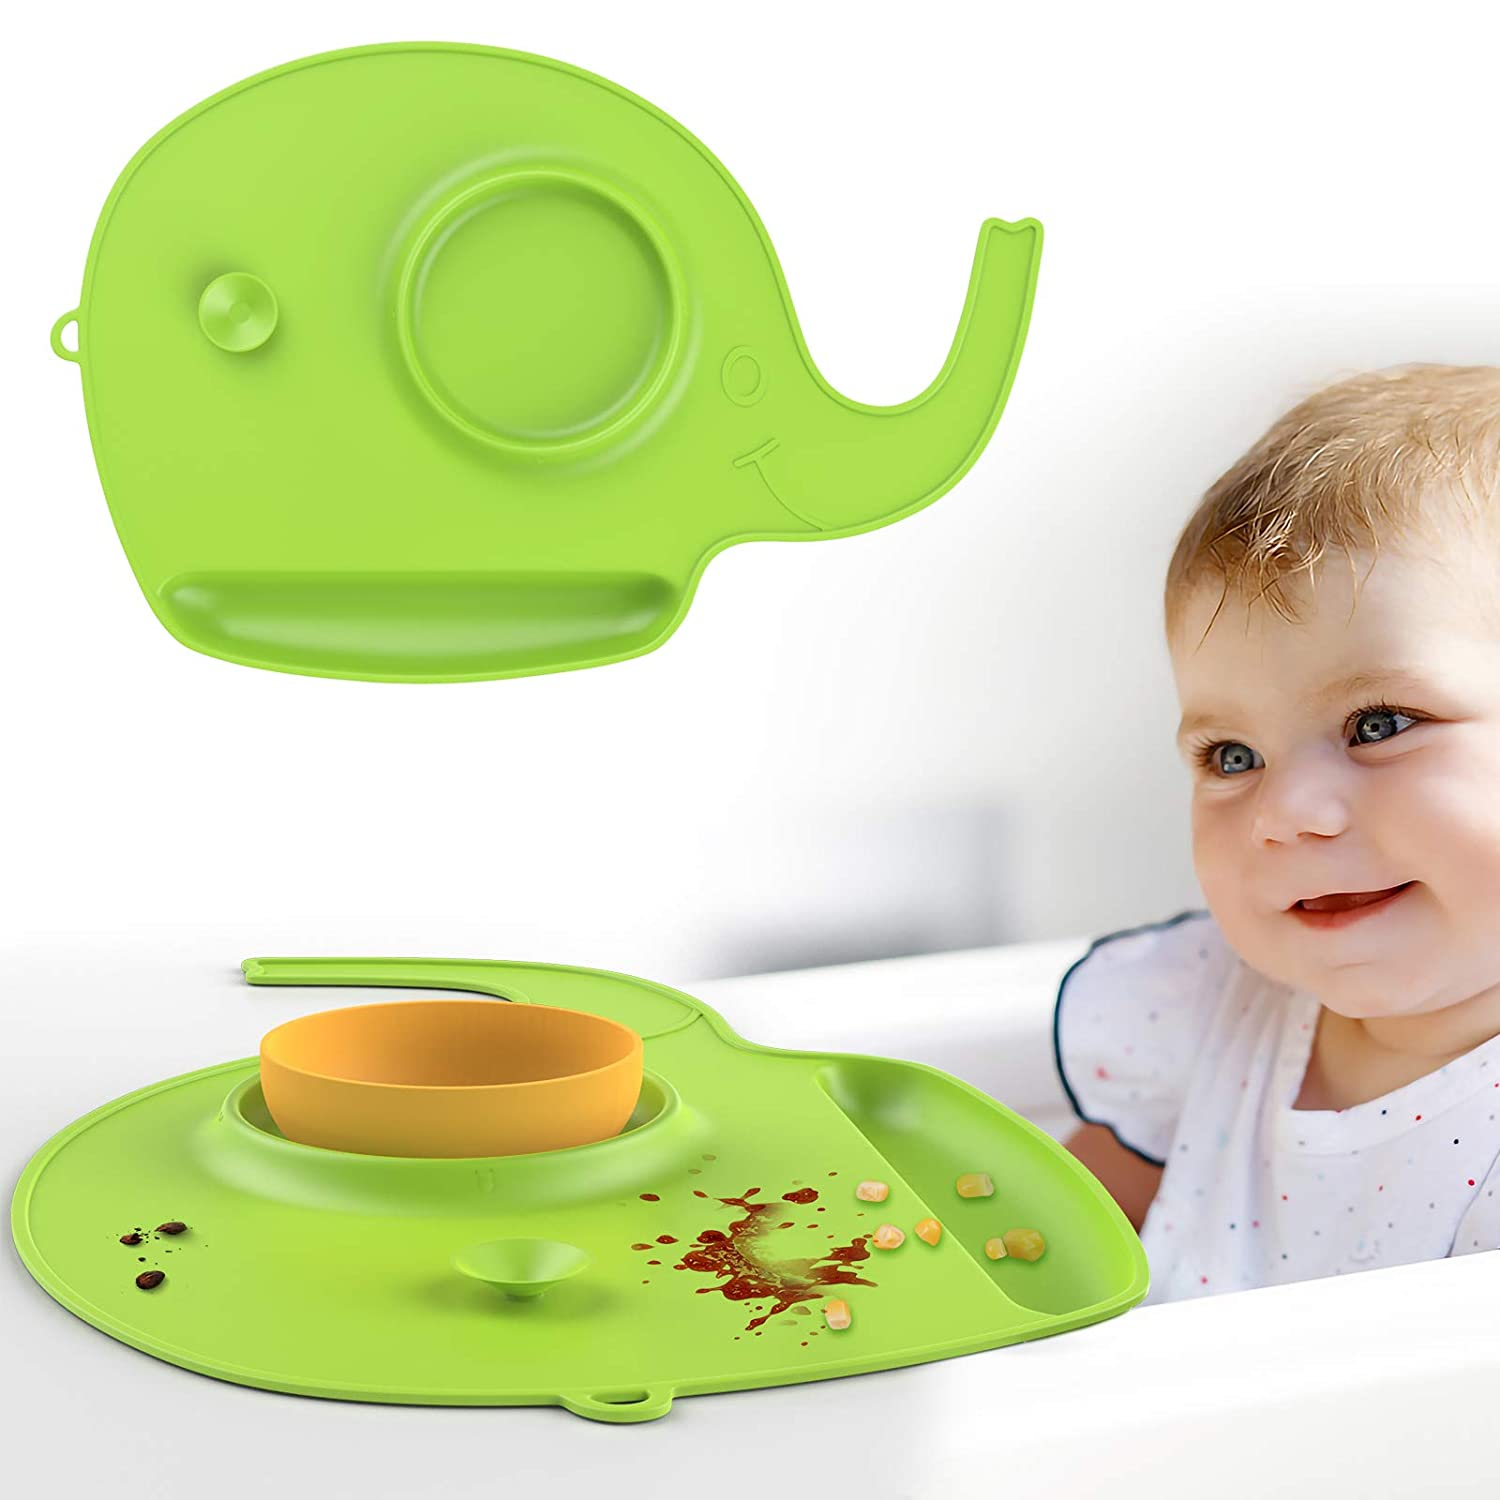 Zooawa Kids Placemat, Non-Slip Food-Grade Silicone Baby Food Catching Placemat with Suction, Foldable Mat Washable Silicone placemats Soft Heat-Resistant for Kids Babies and Toddlers, Green